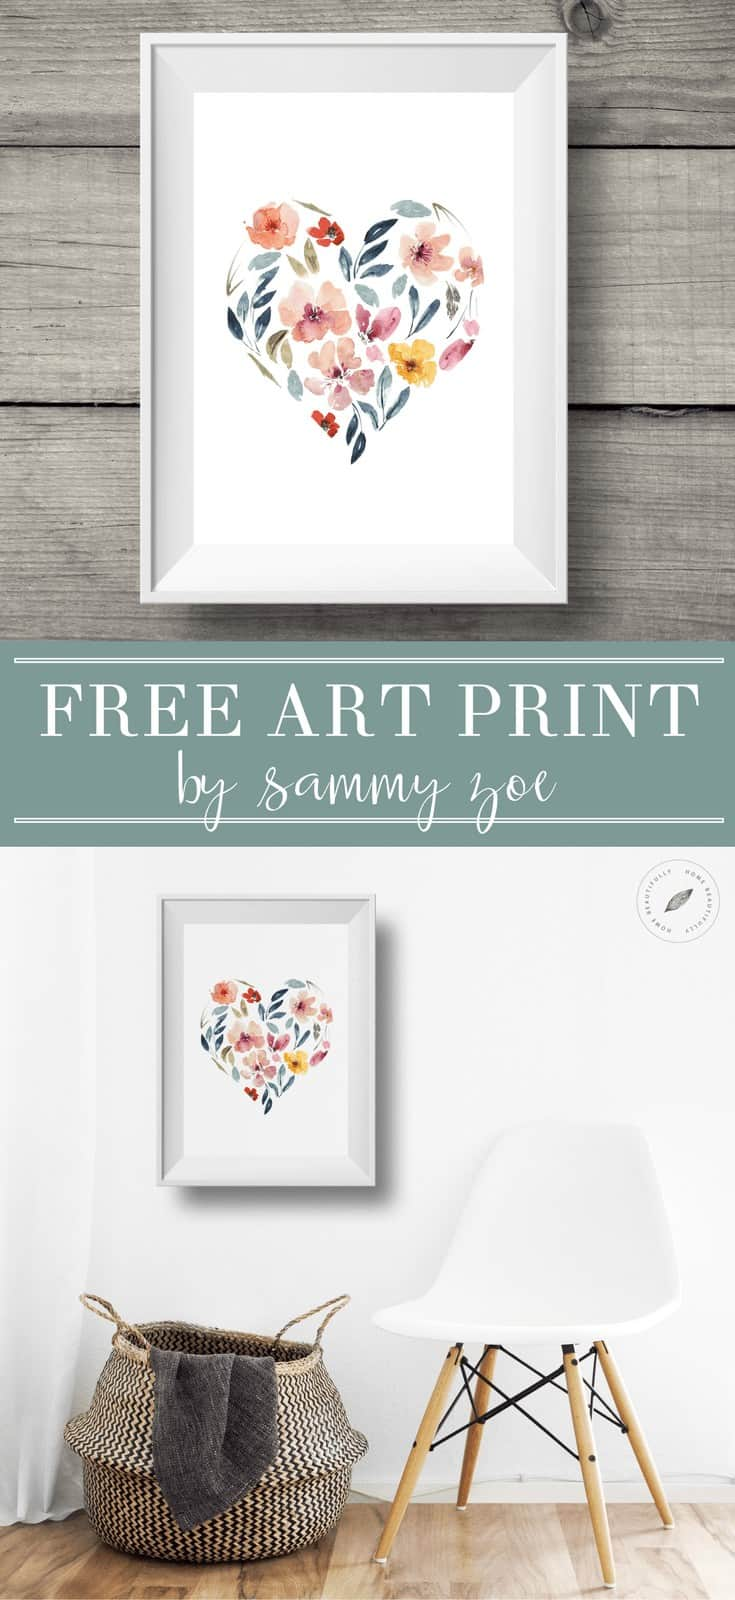 Sammy Zoe Illustration Free Art Print Watercolor Heart! Grab this beautiful printable and enjoy your free art print.